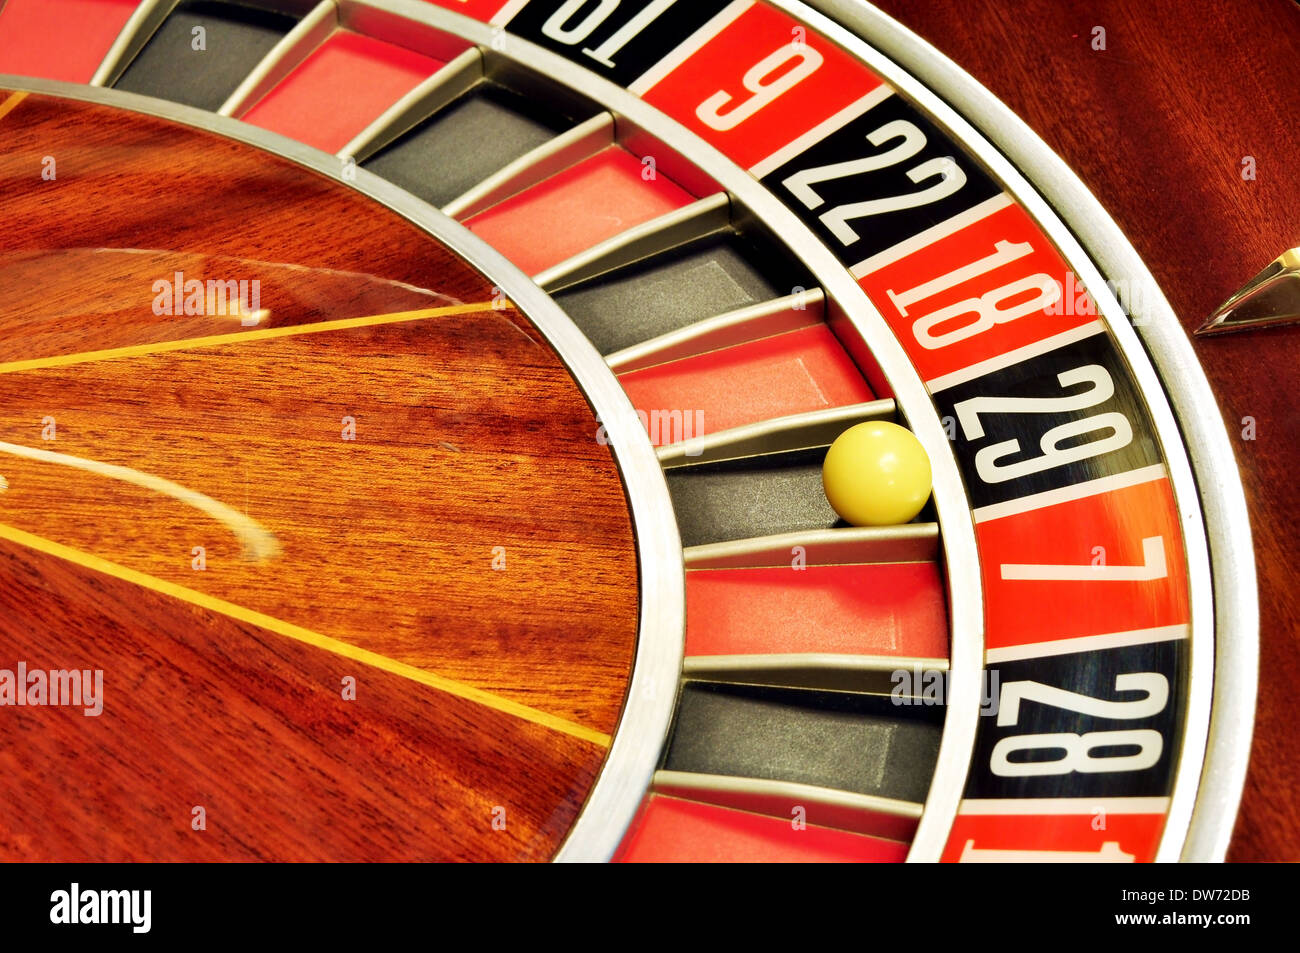 image with a casino roulette wheel with the ball on number 29 - Stock Image